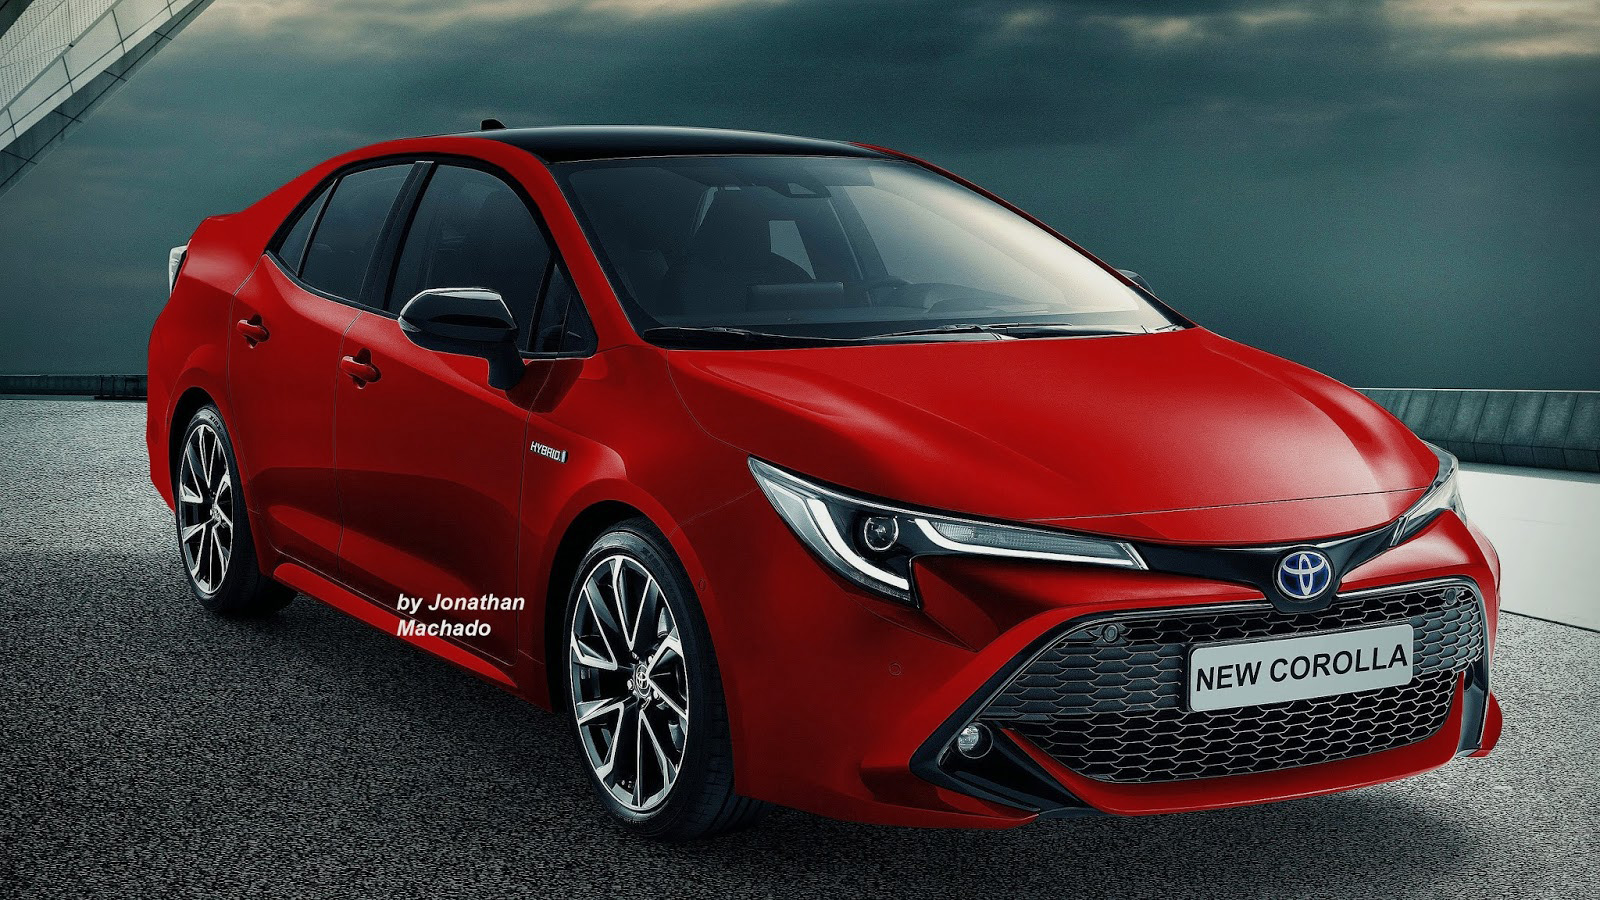 Renderings: Next Generation Toyota Corolla Imagined ...